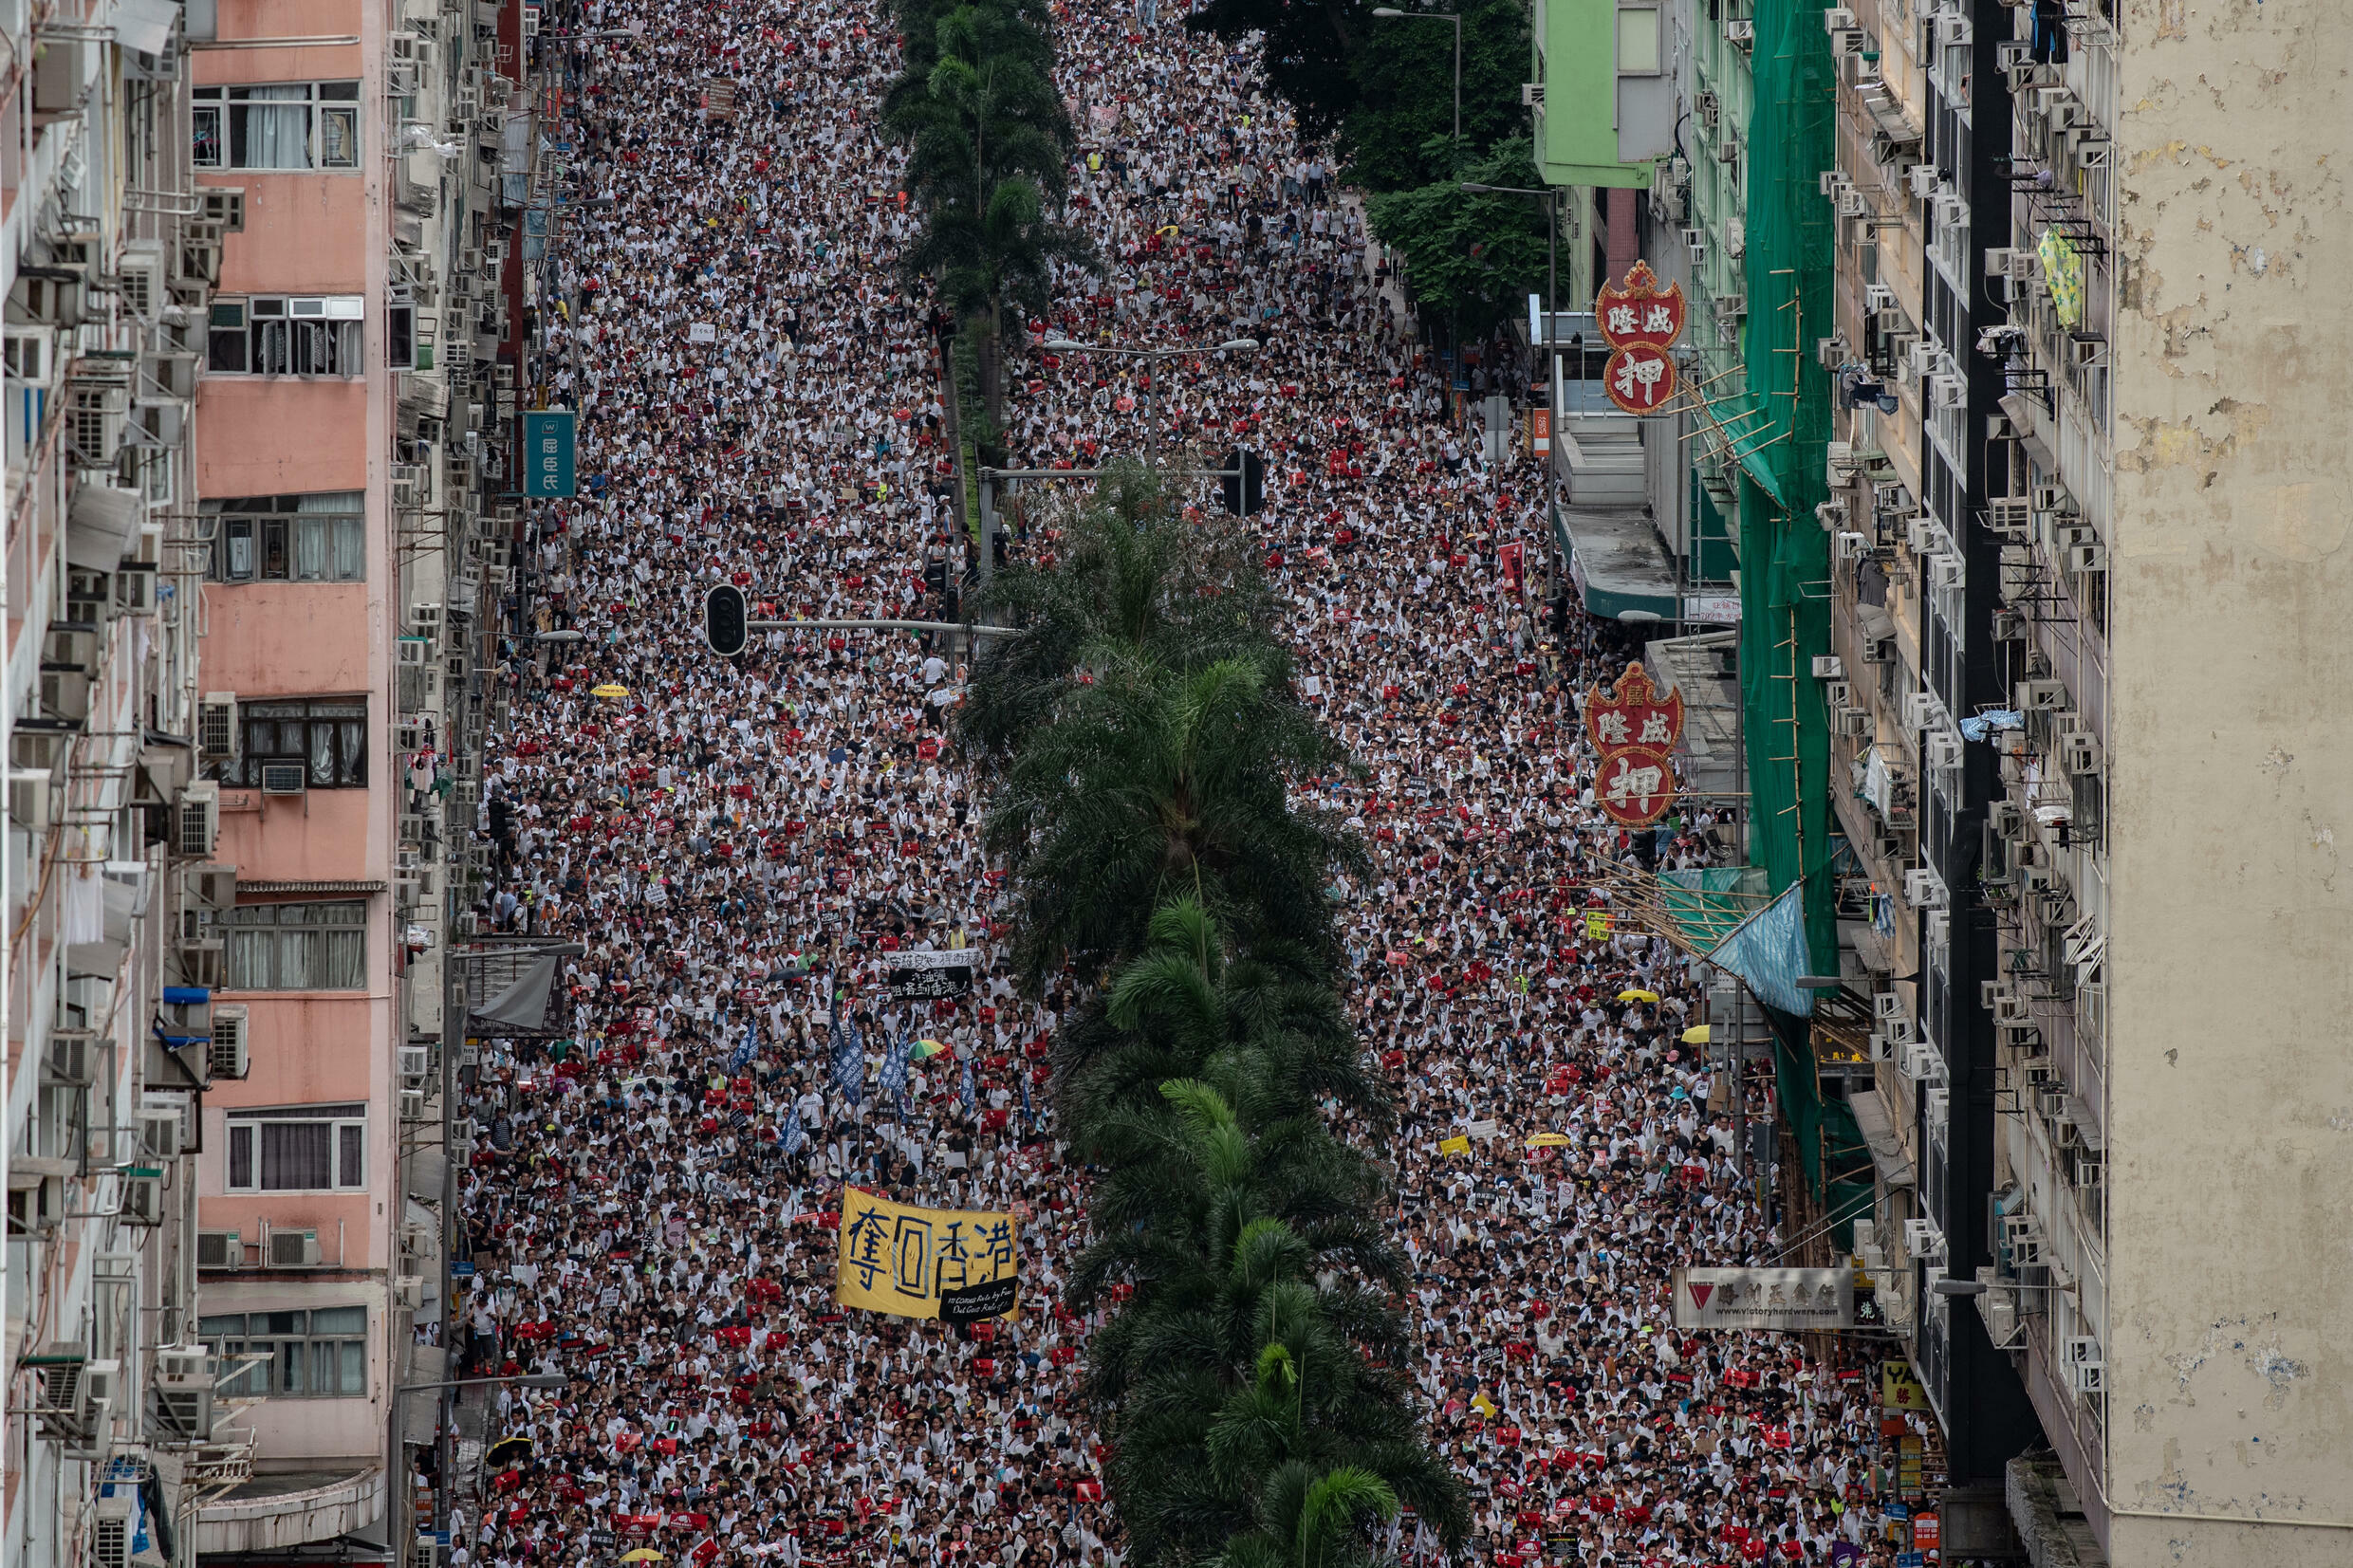 The CHRF routinely got crowds of hundreds of thousands, if not more than a million, onto the streets of Hong Kong